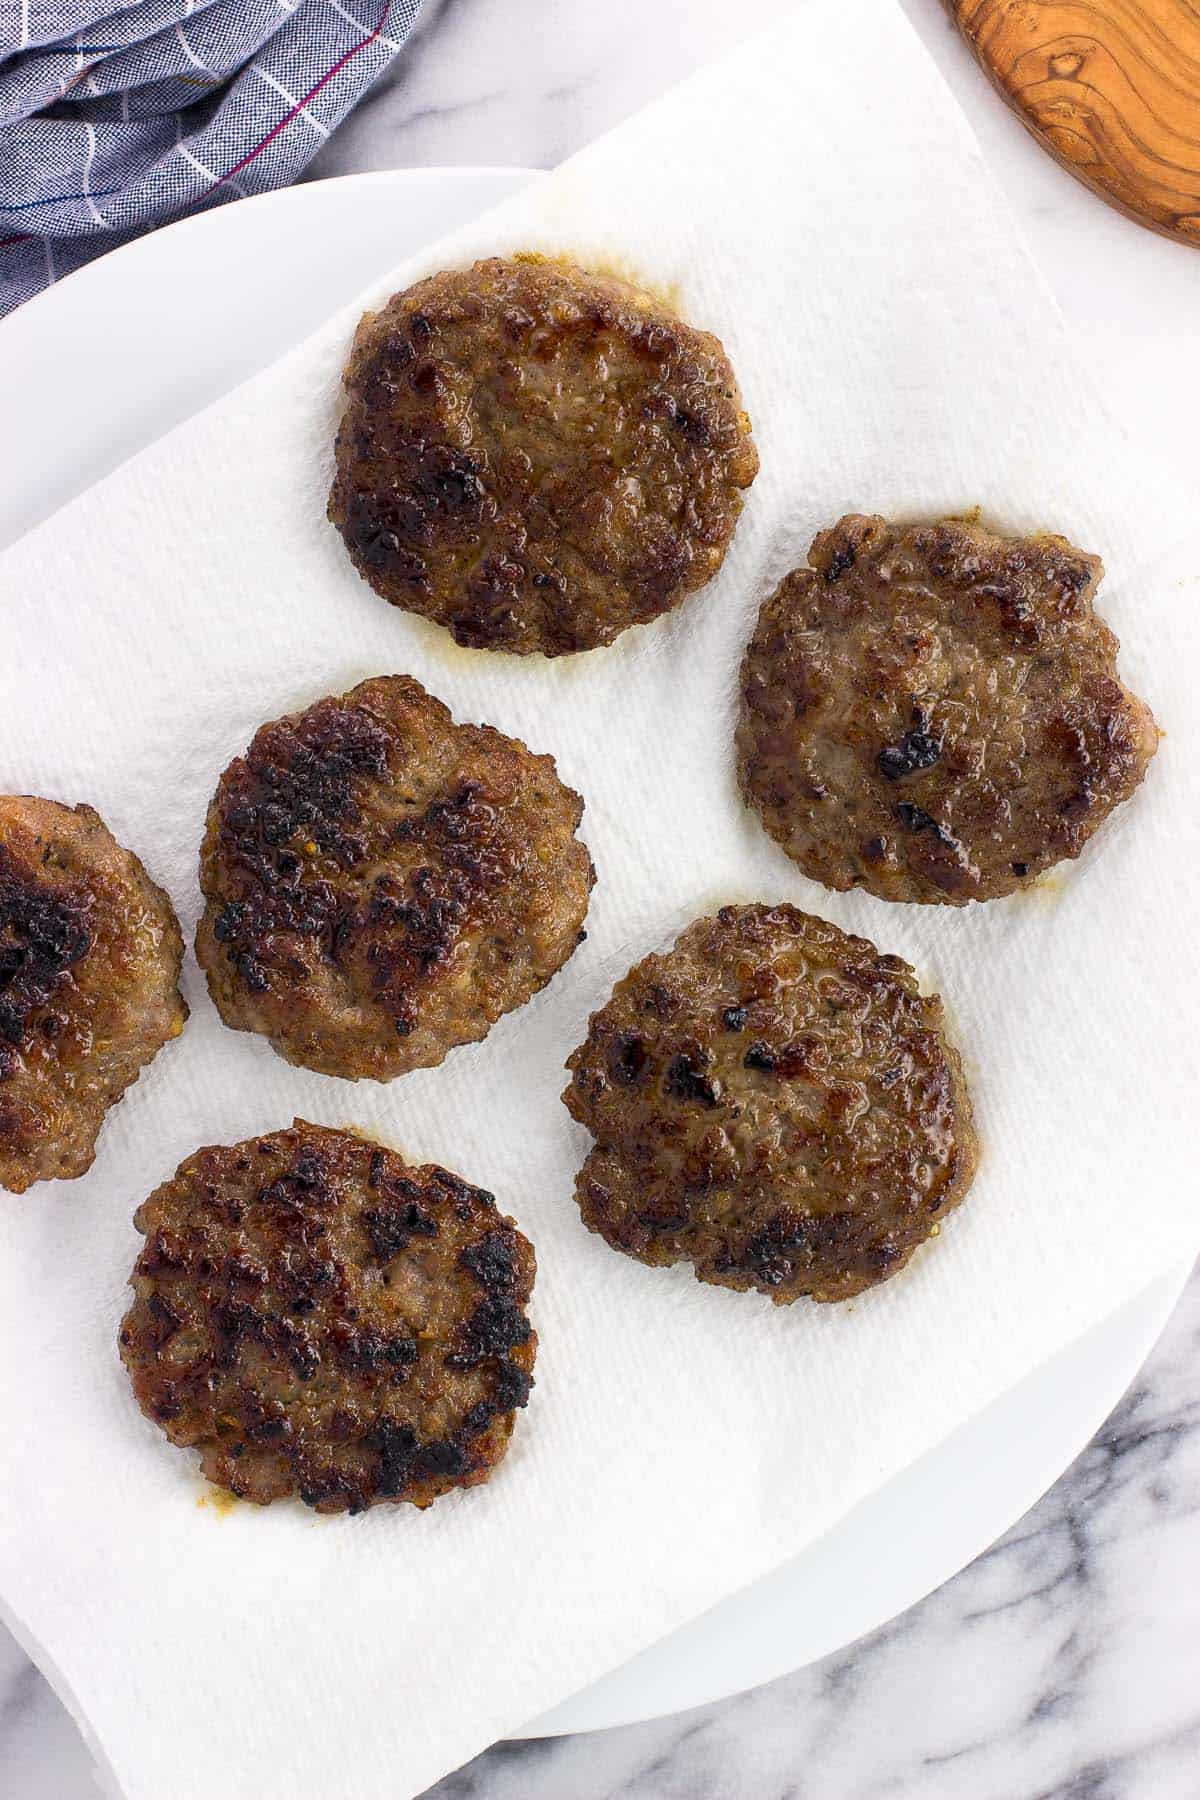 Cooked sausage patties draining on a paper-towel lined plate